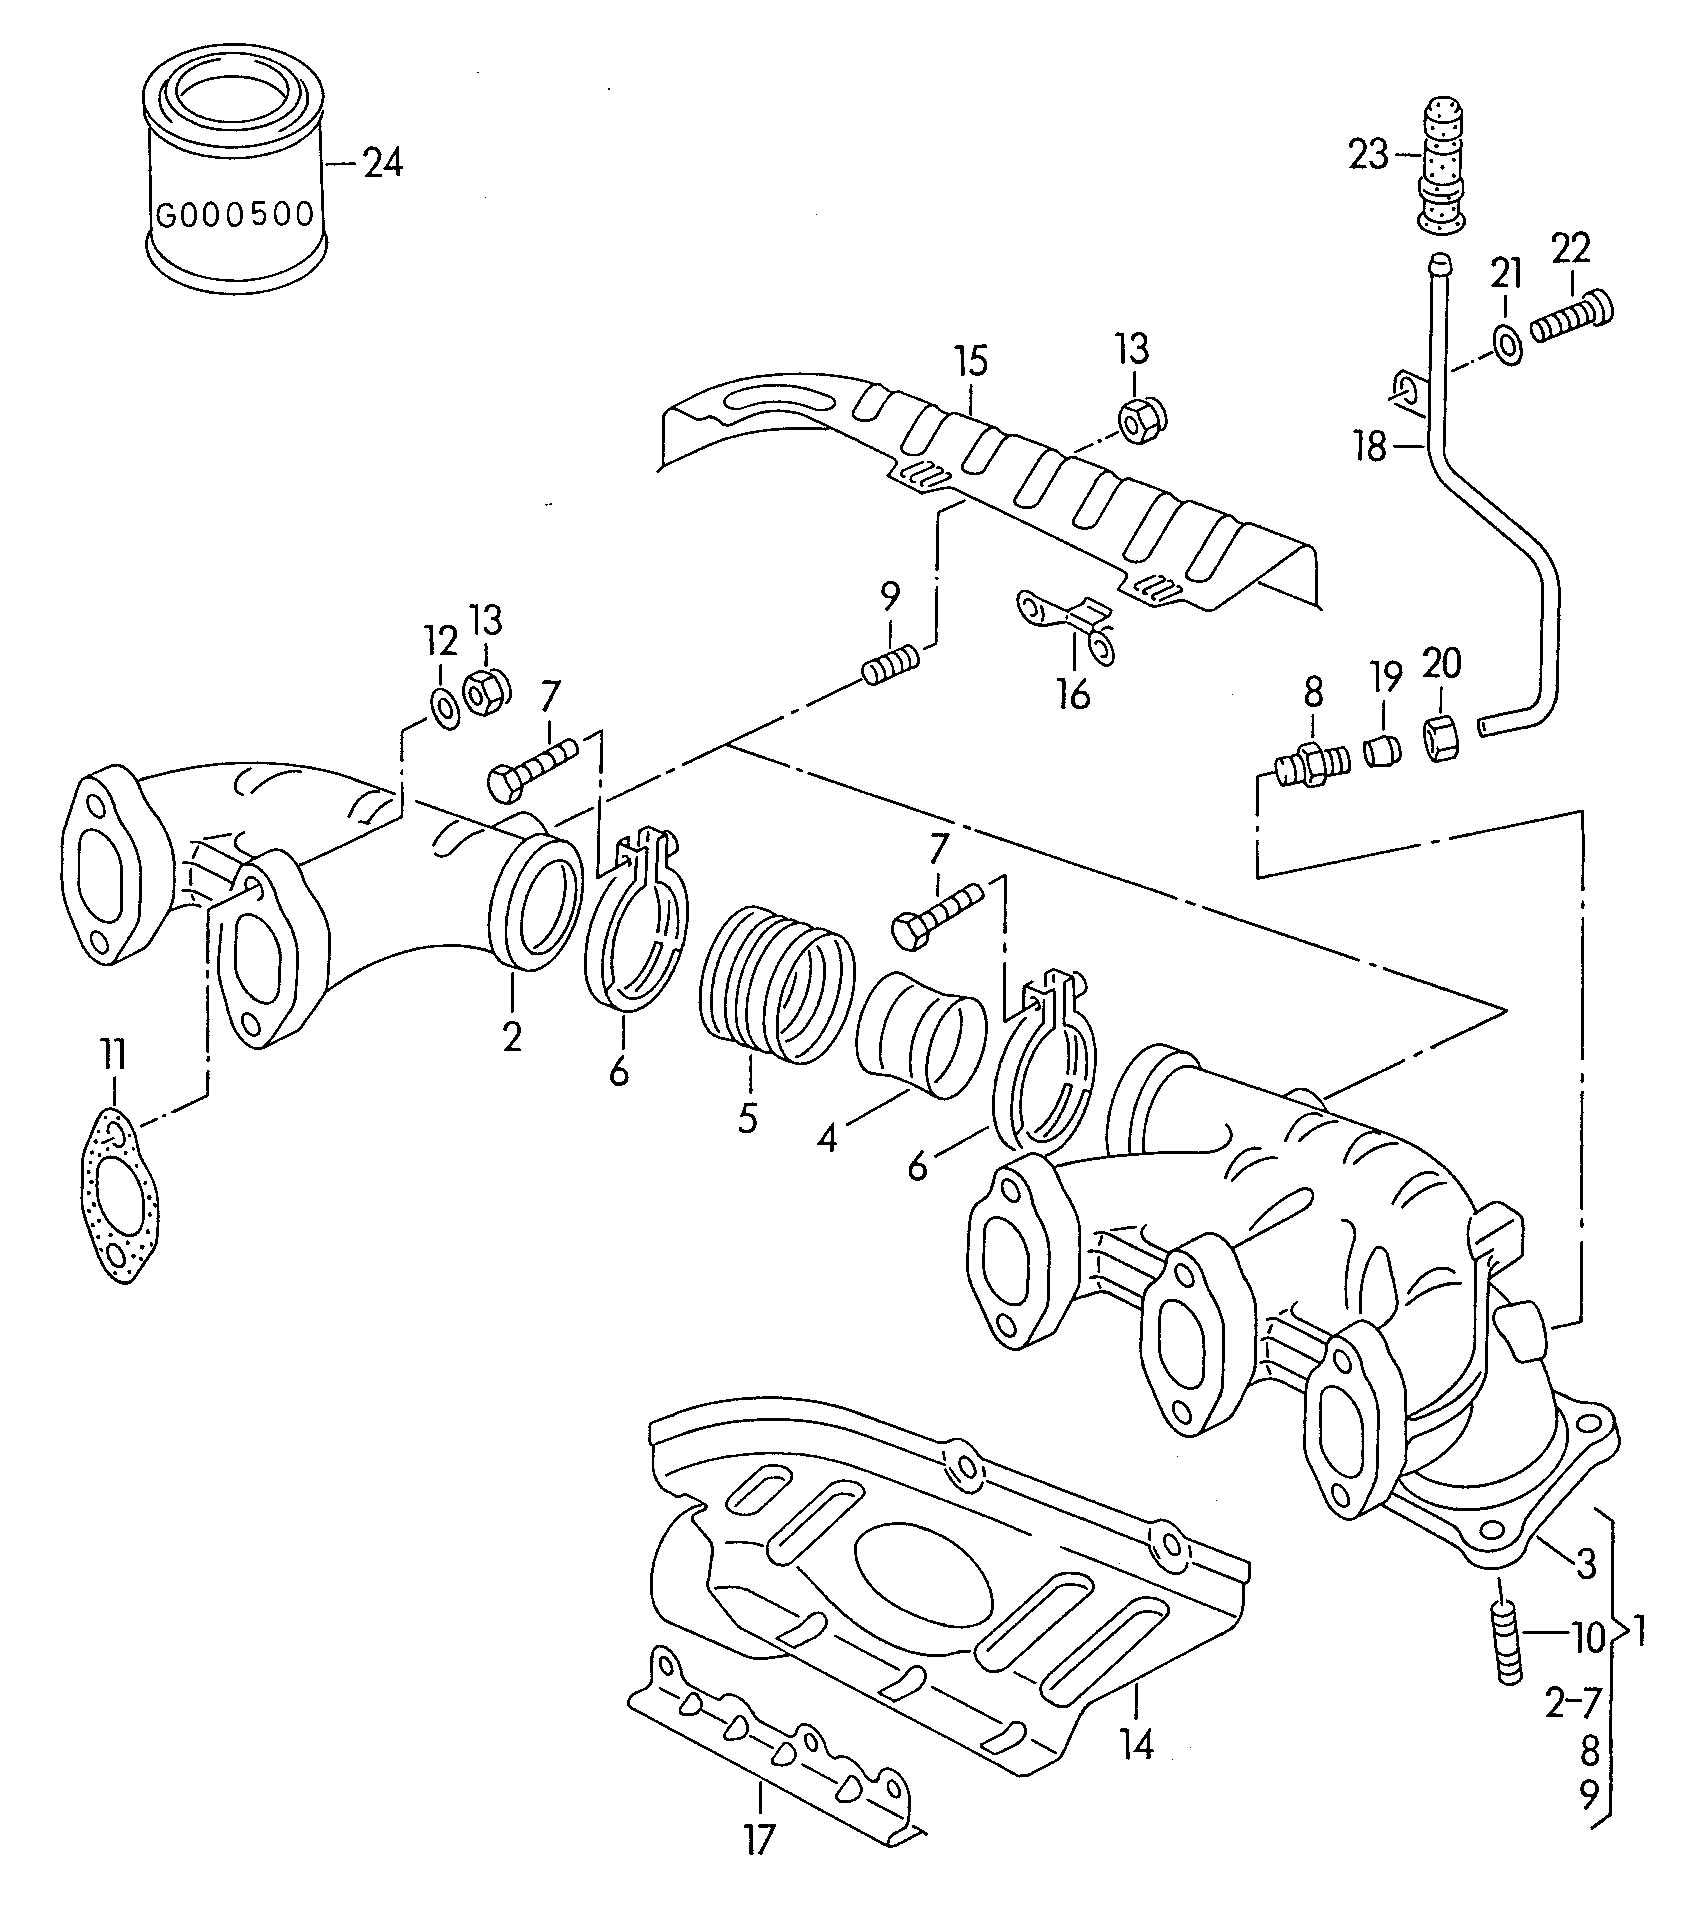 3300 V6 Engine Diagram Wiring Diagrams 3800 Series Ii Get Free Image About Ford 30l